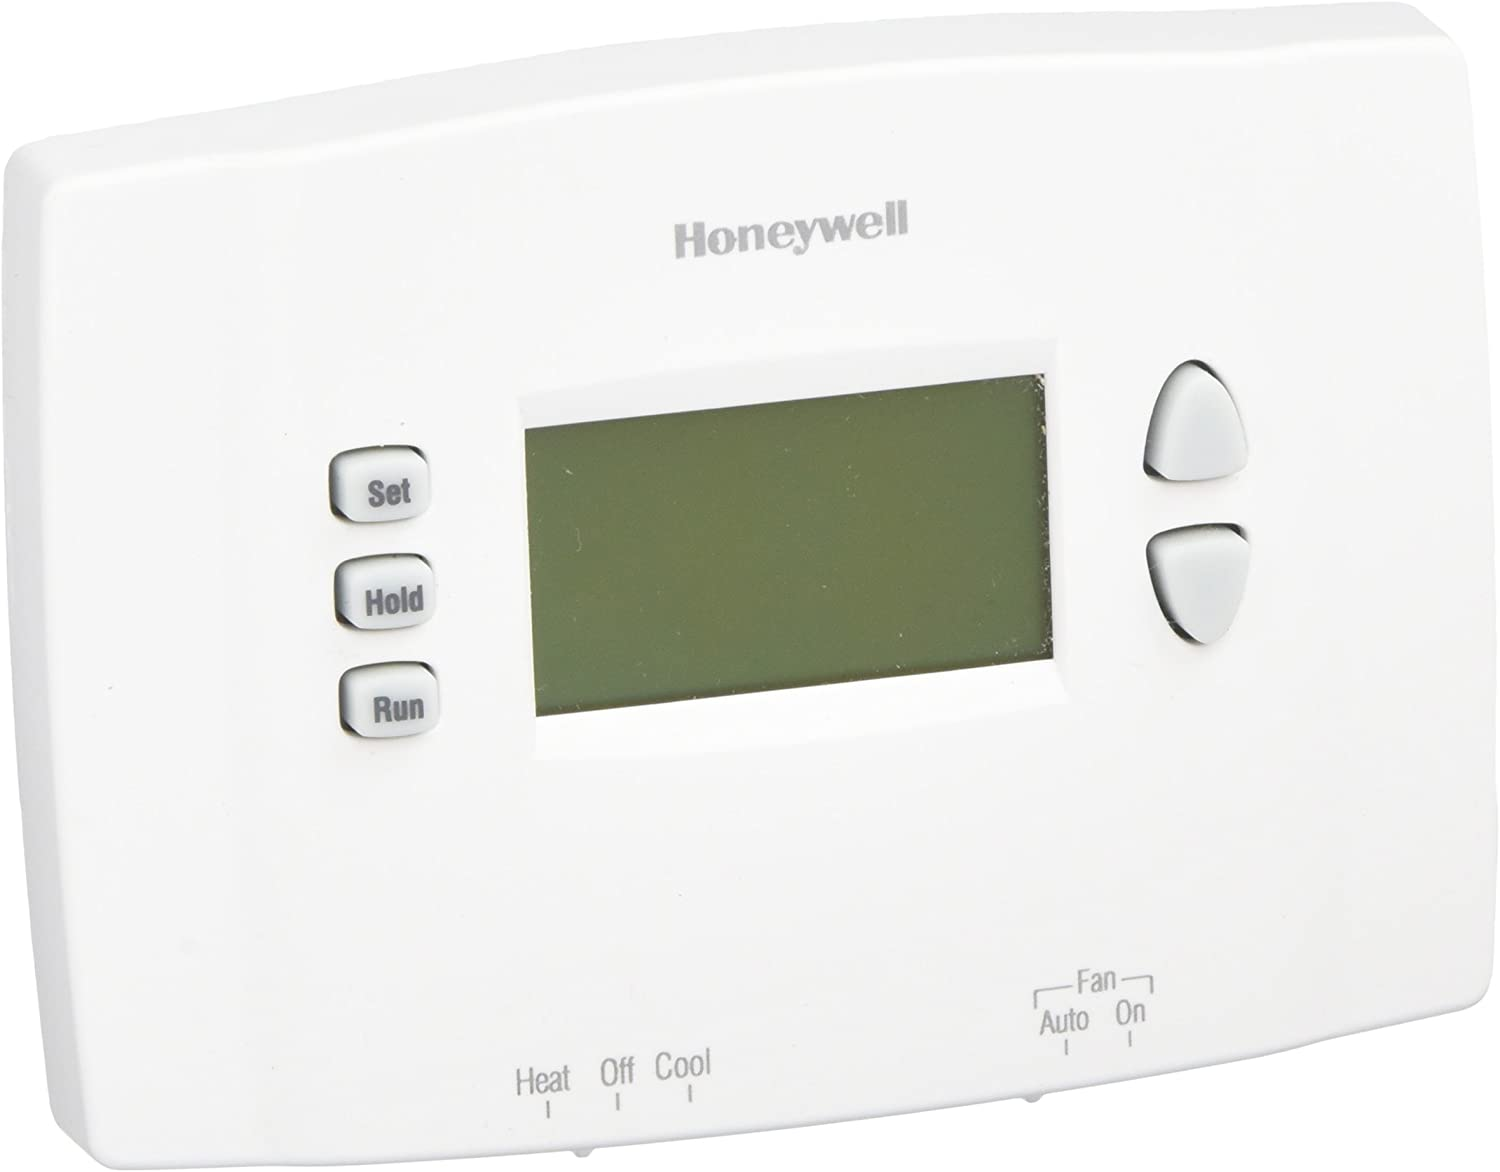 Honeywell RTHL2510C1002-U1 Energy Star 7-Day Programmable Home Thermostat, White